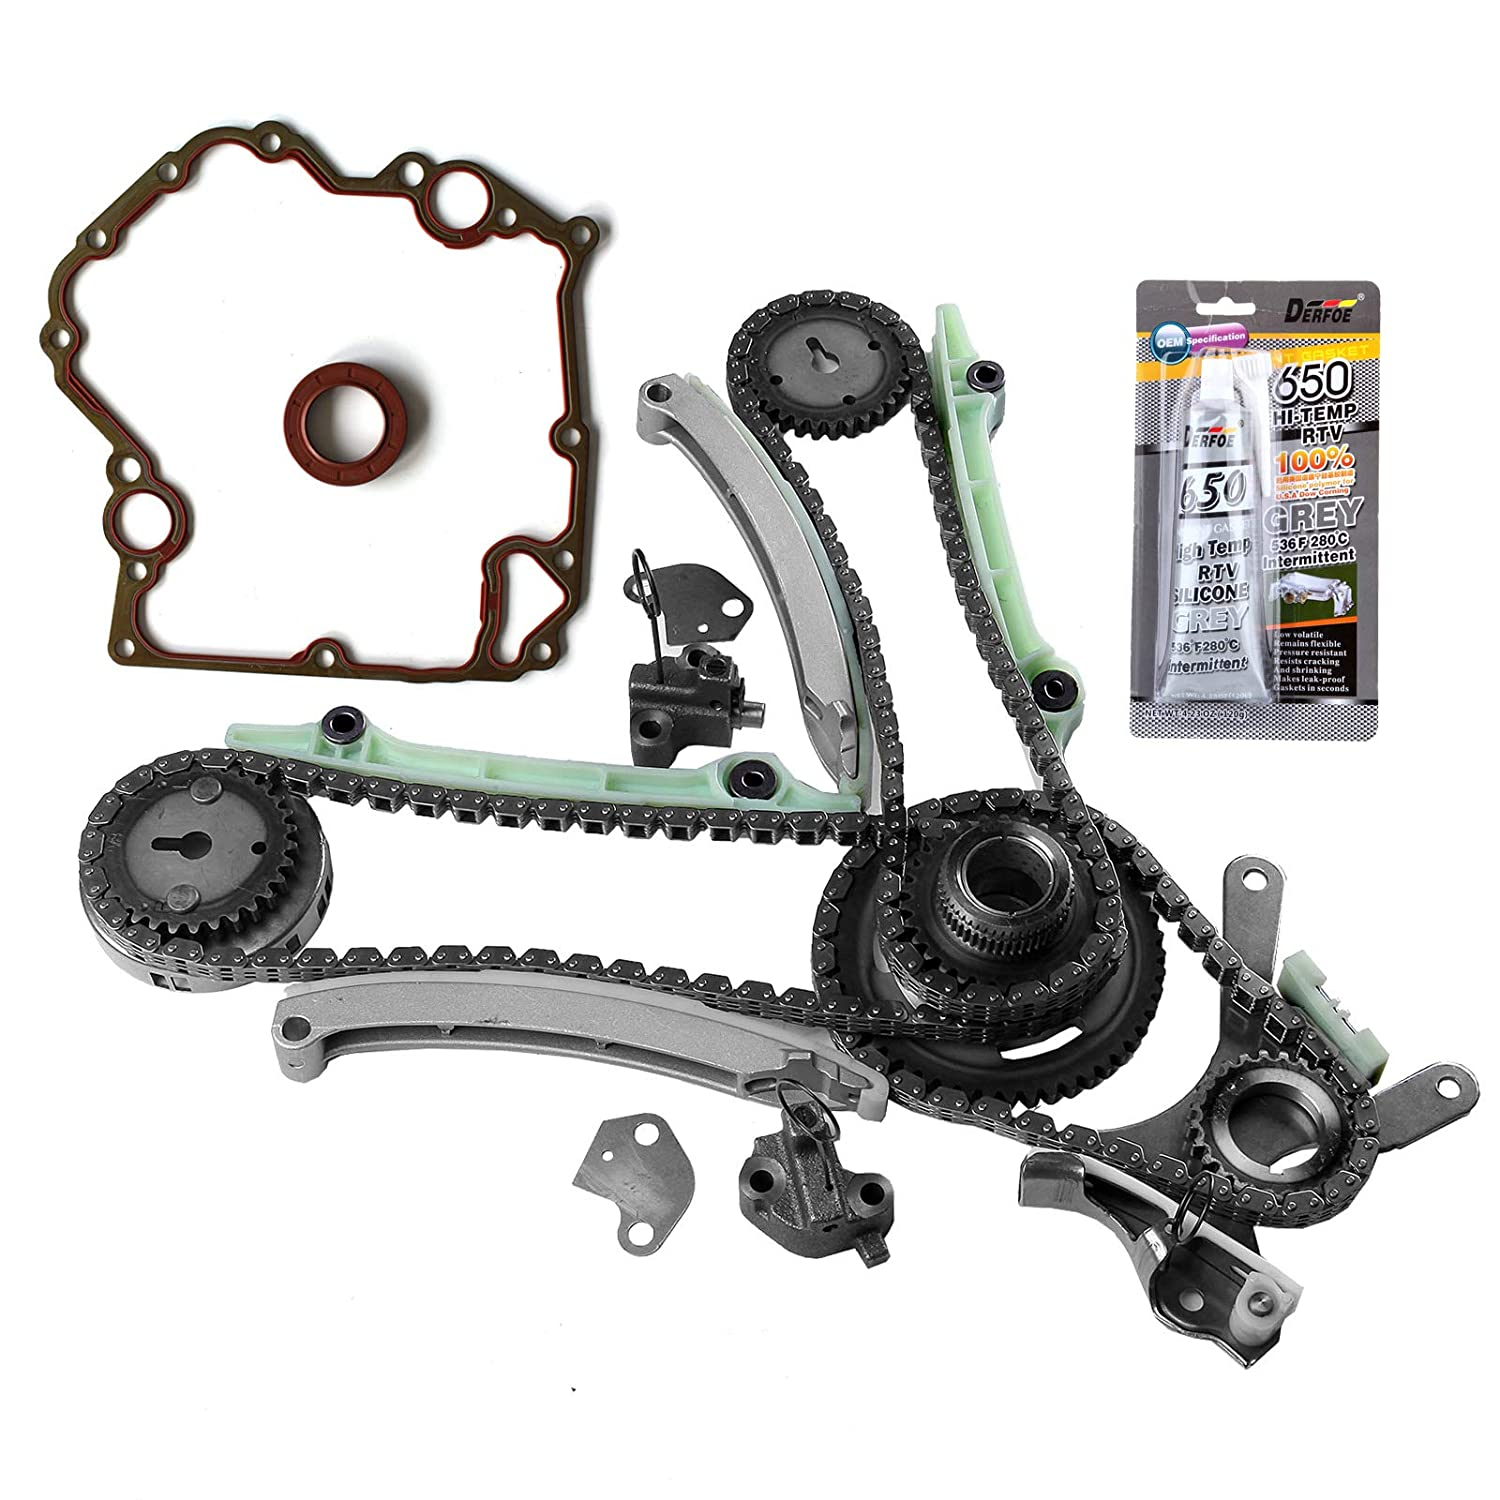 in INEEDUP Timing Chain Kits Fit for 2005 2006 2007 2008 Dodge Ram 1500 4.7L 285Cu V8 Gas SOHC Naturally Aspirated